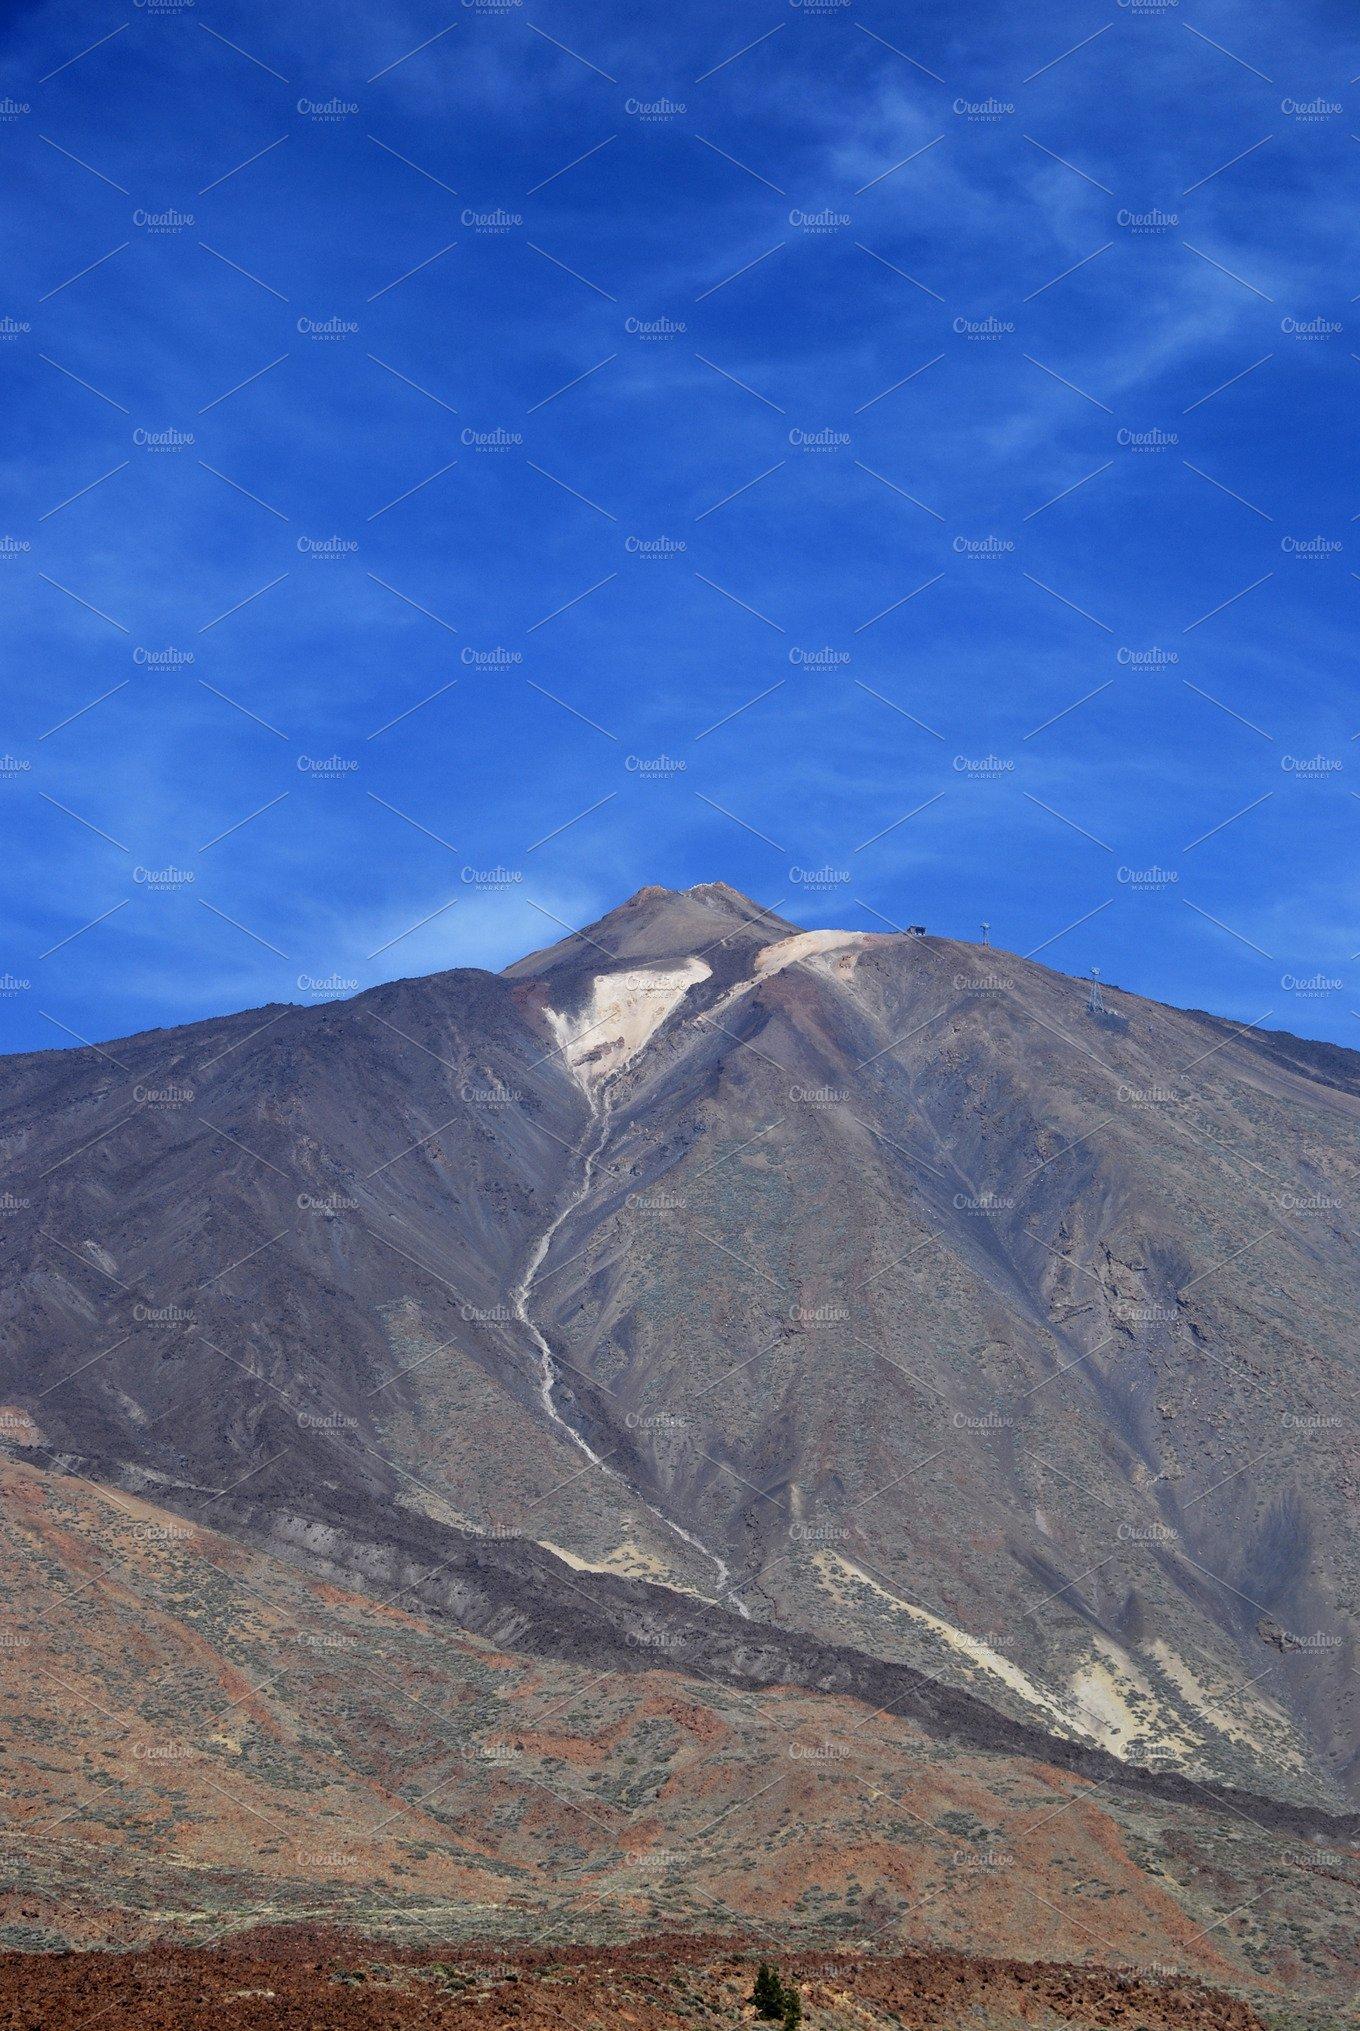 Mount Teide On The Island Of Tenerife In The Canary